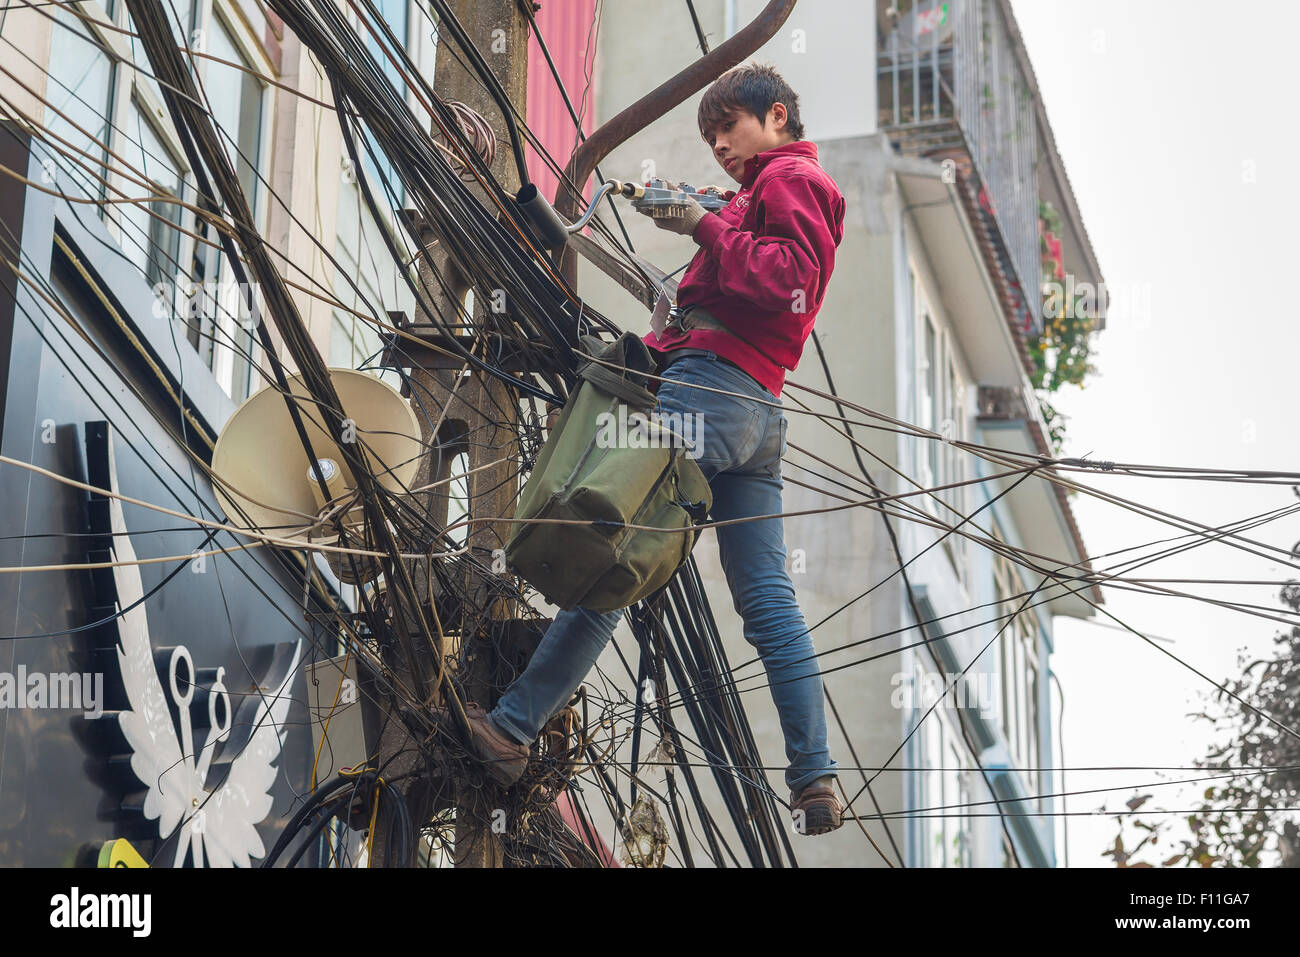 Vietnam street cables, above a street in the Old Quarter in Hanoi an electrical engineer works amid a dense tangle - Stock Image